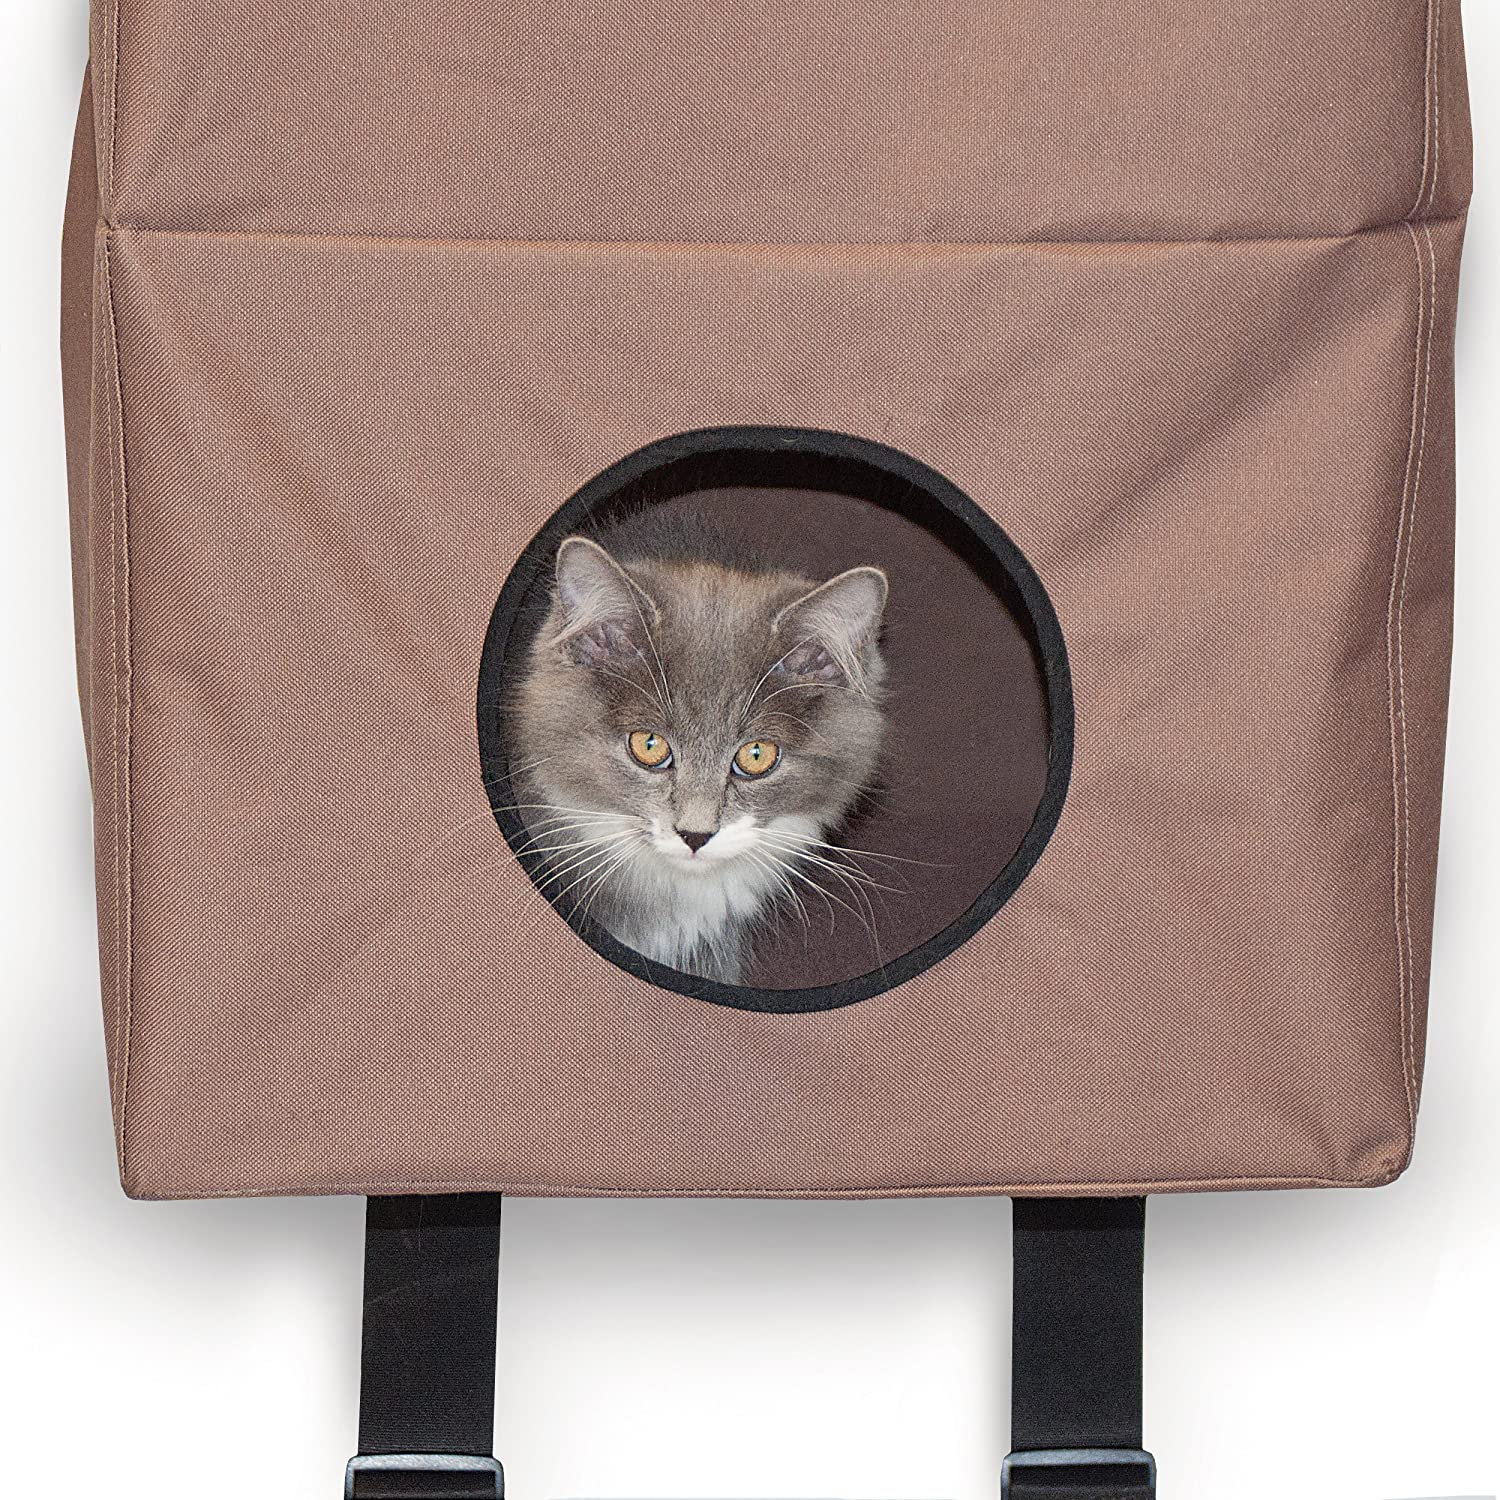 Amazon.com : K\u0026H Manufacturing Hangin\u0027 Cat Condo Large Tan 23-Inch by 16-Inch by 65-Inch : Cat Houses And Condos : Pet Supplies & Amazon.com : K\u0026H Manufacturing Hangin\u0027 Cat Condo Large Tan 23-Inch ... Pezcame.Com